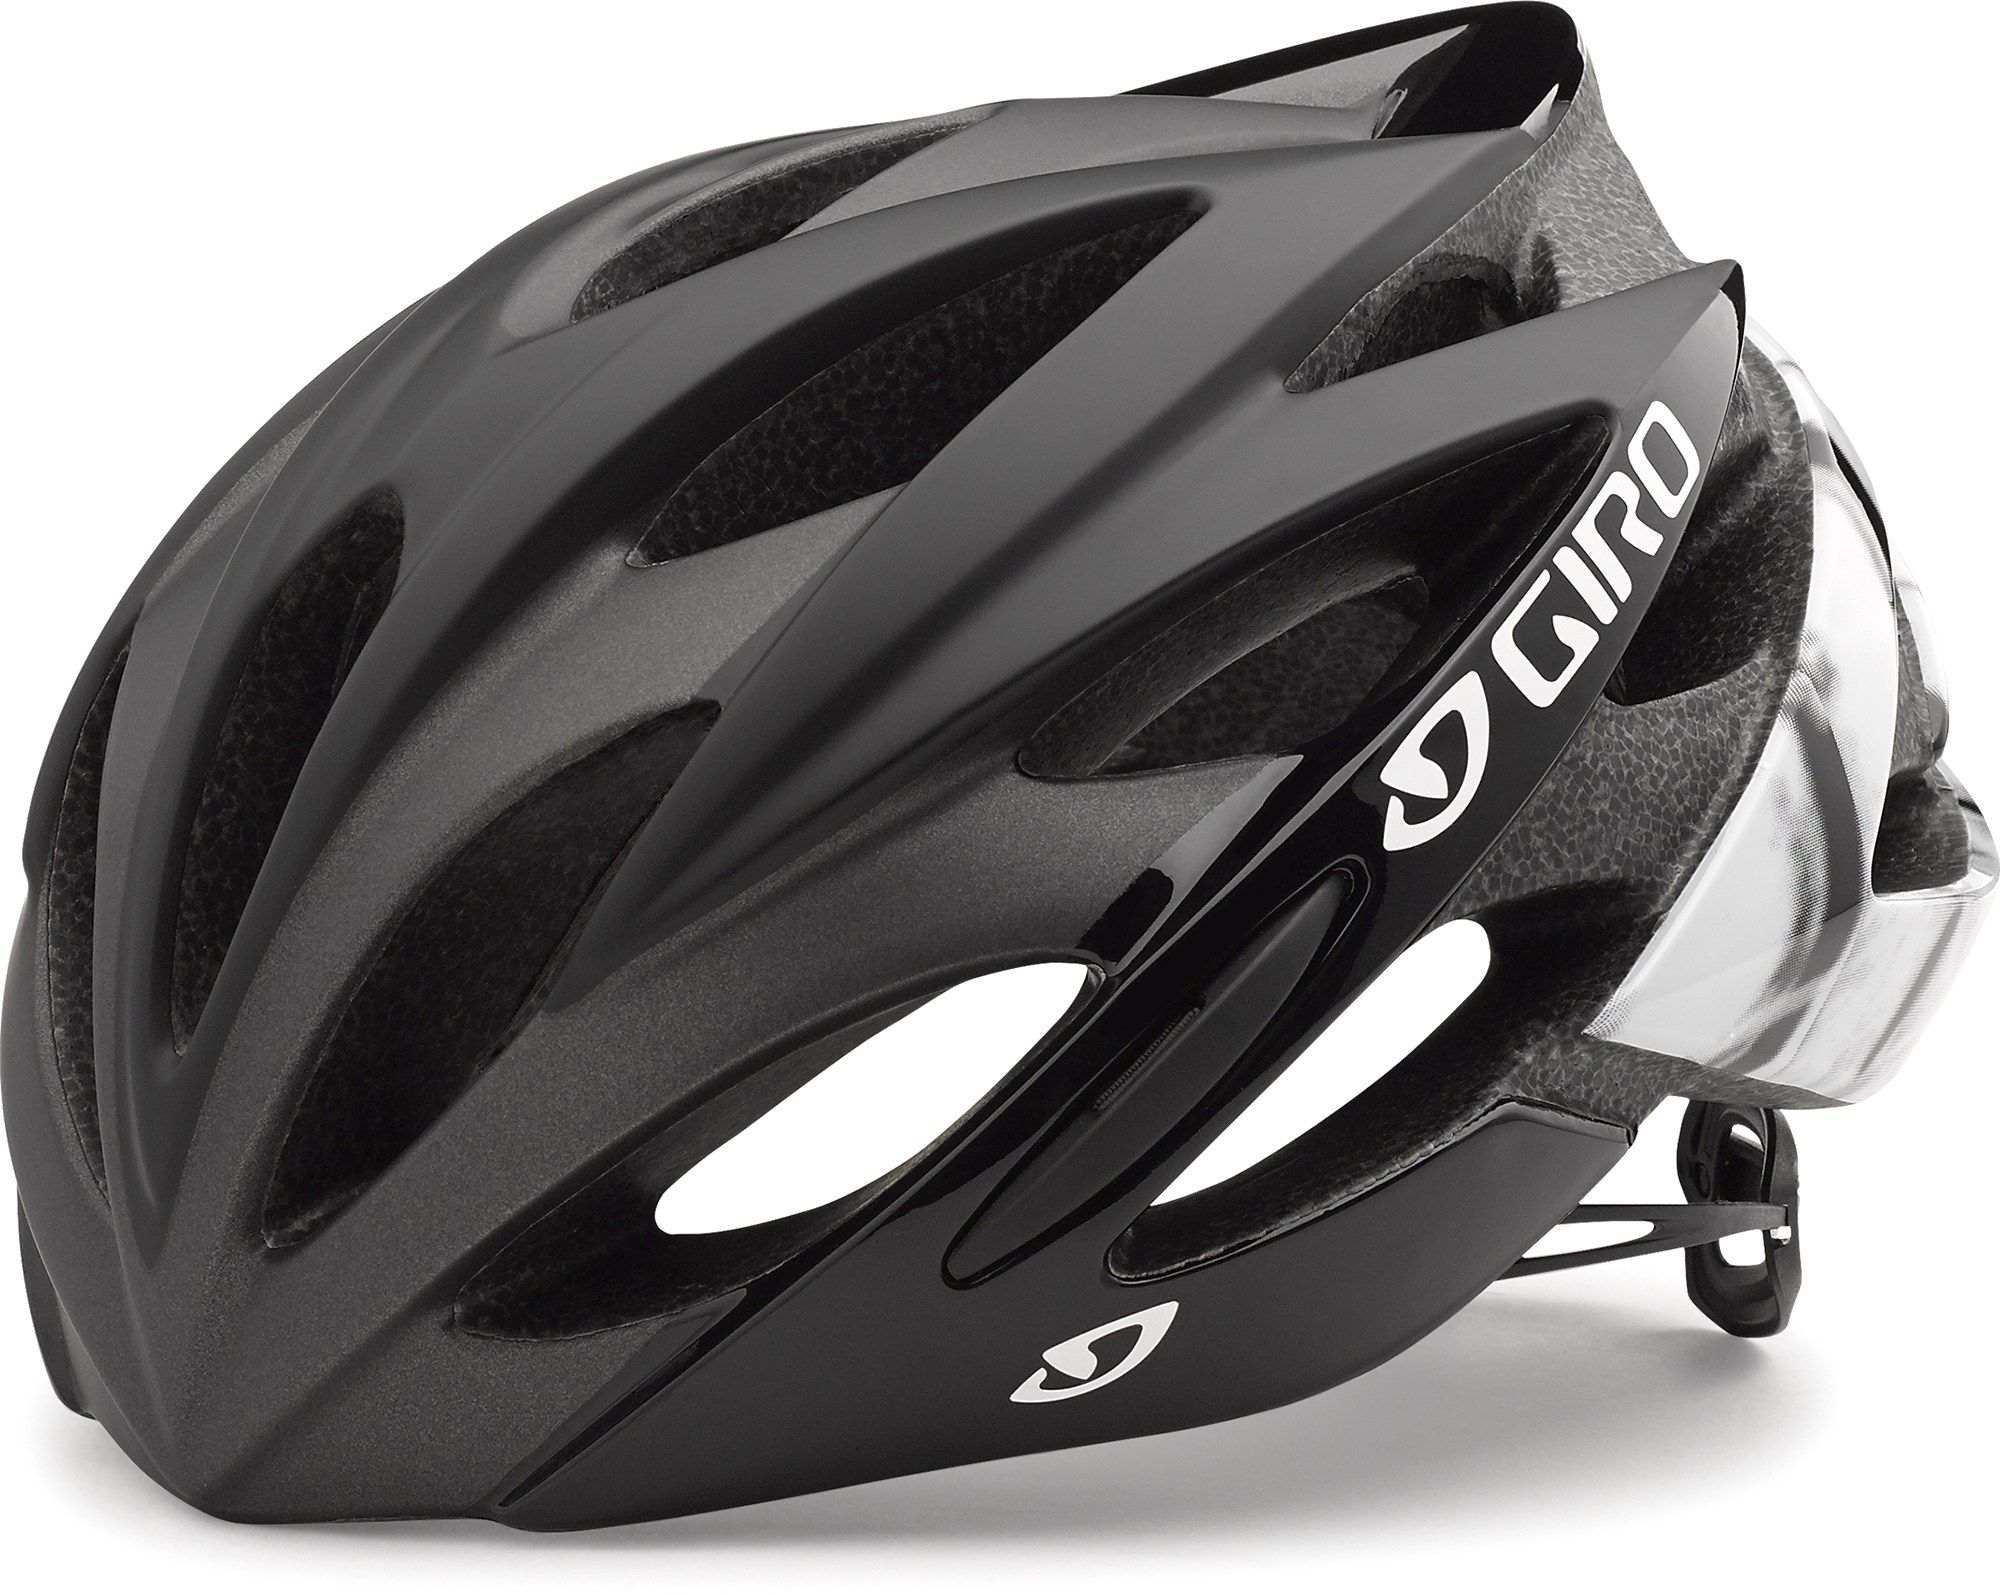 Giro Female Sonnet Bike Helmet - Women's